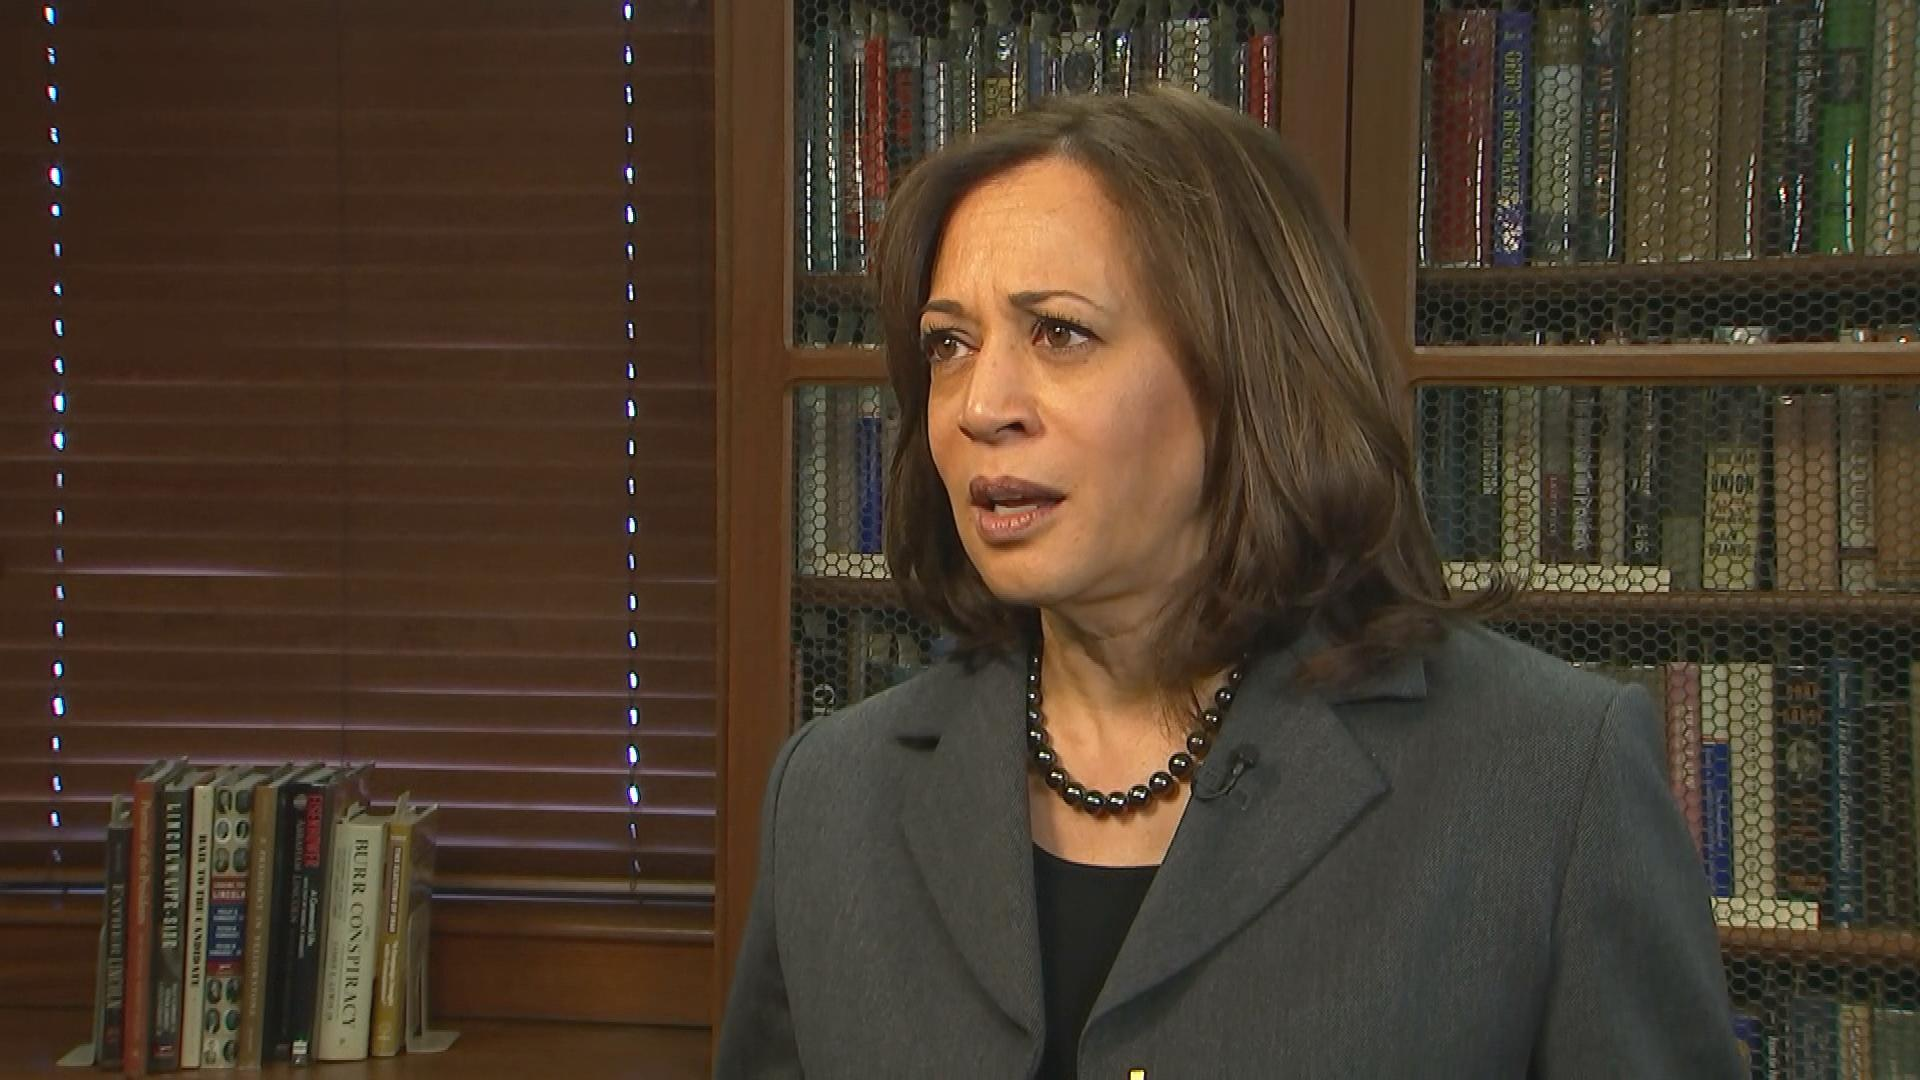 2020 presidential candidate Kamala Harris explains health care stance